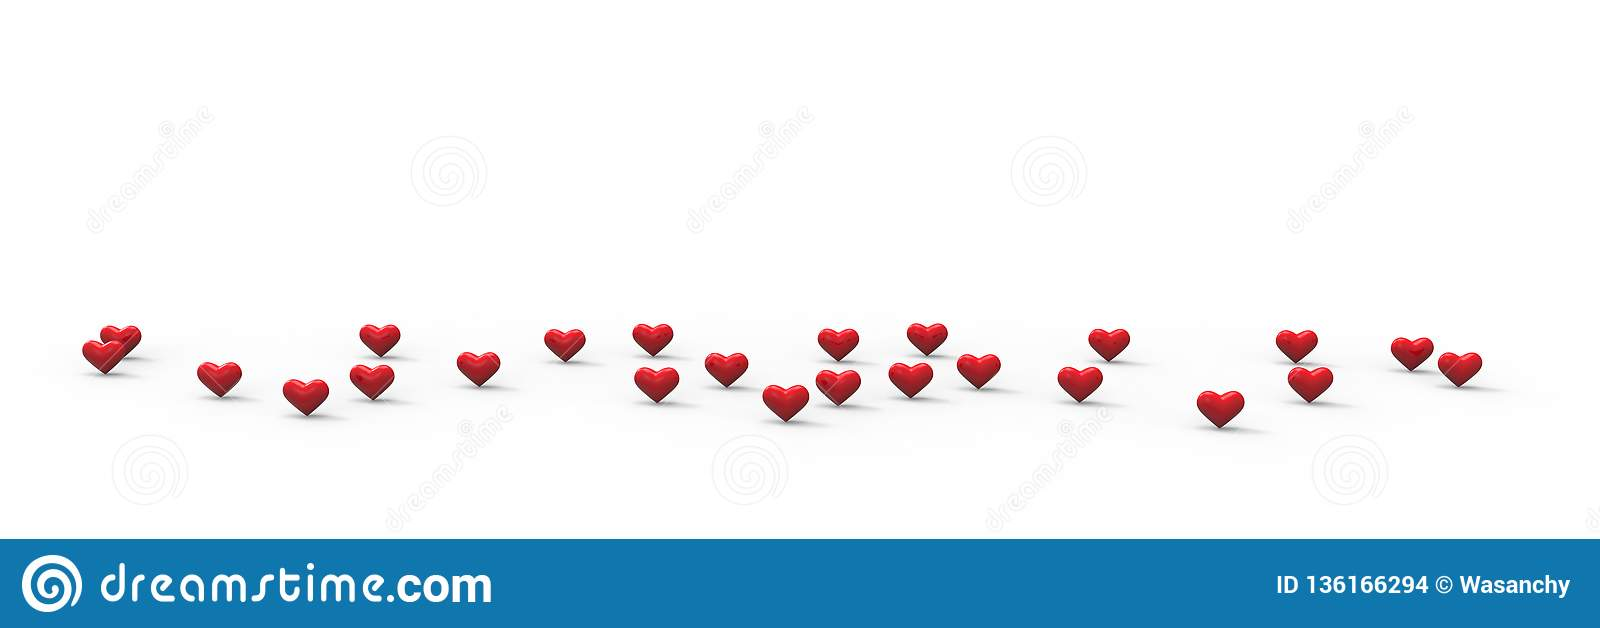 Group of Valentine Hearts on white background. 3D rendering